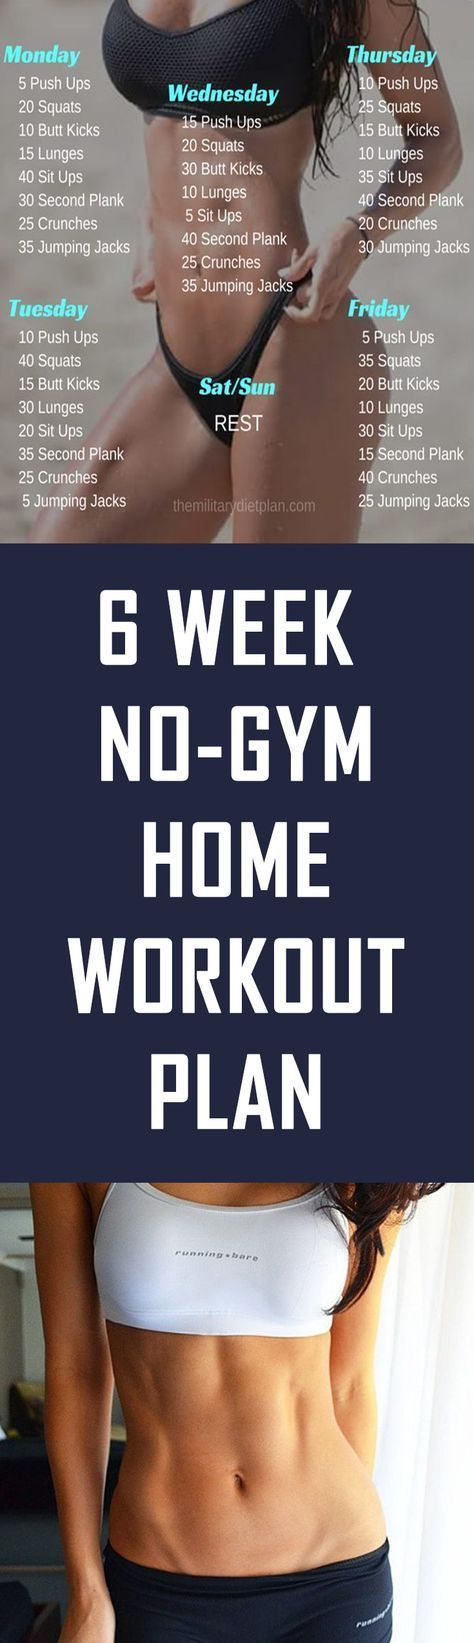 6 Week No Gym Home Workout Plan & Natural Weight Loss Meal Replacement Shakes #goodcoreexercises